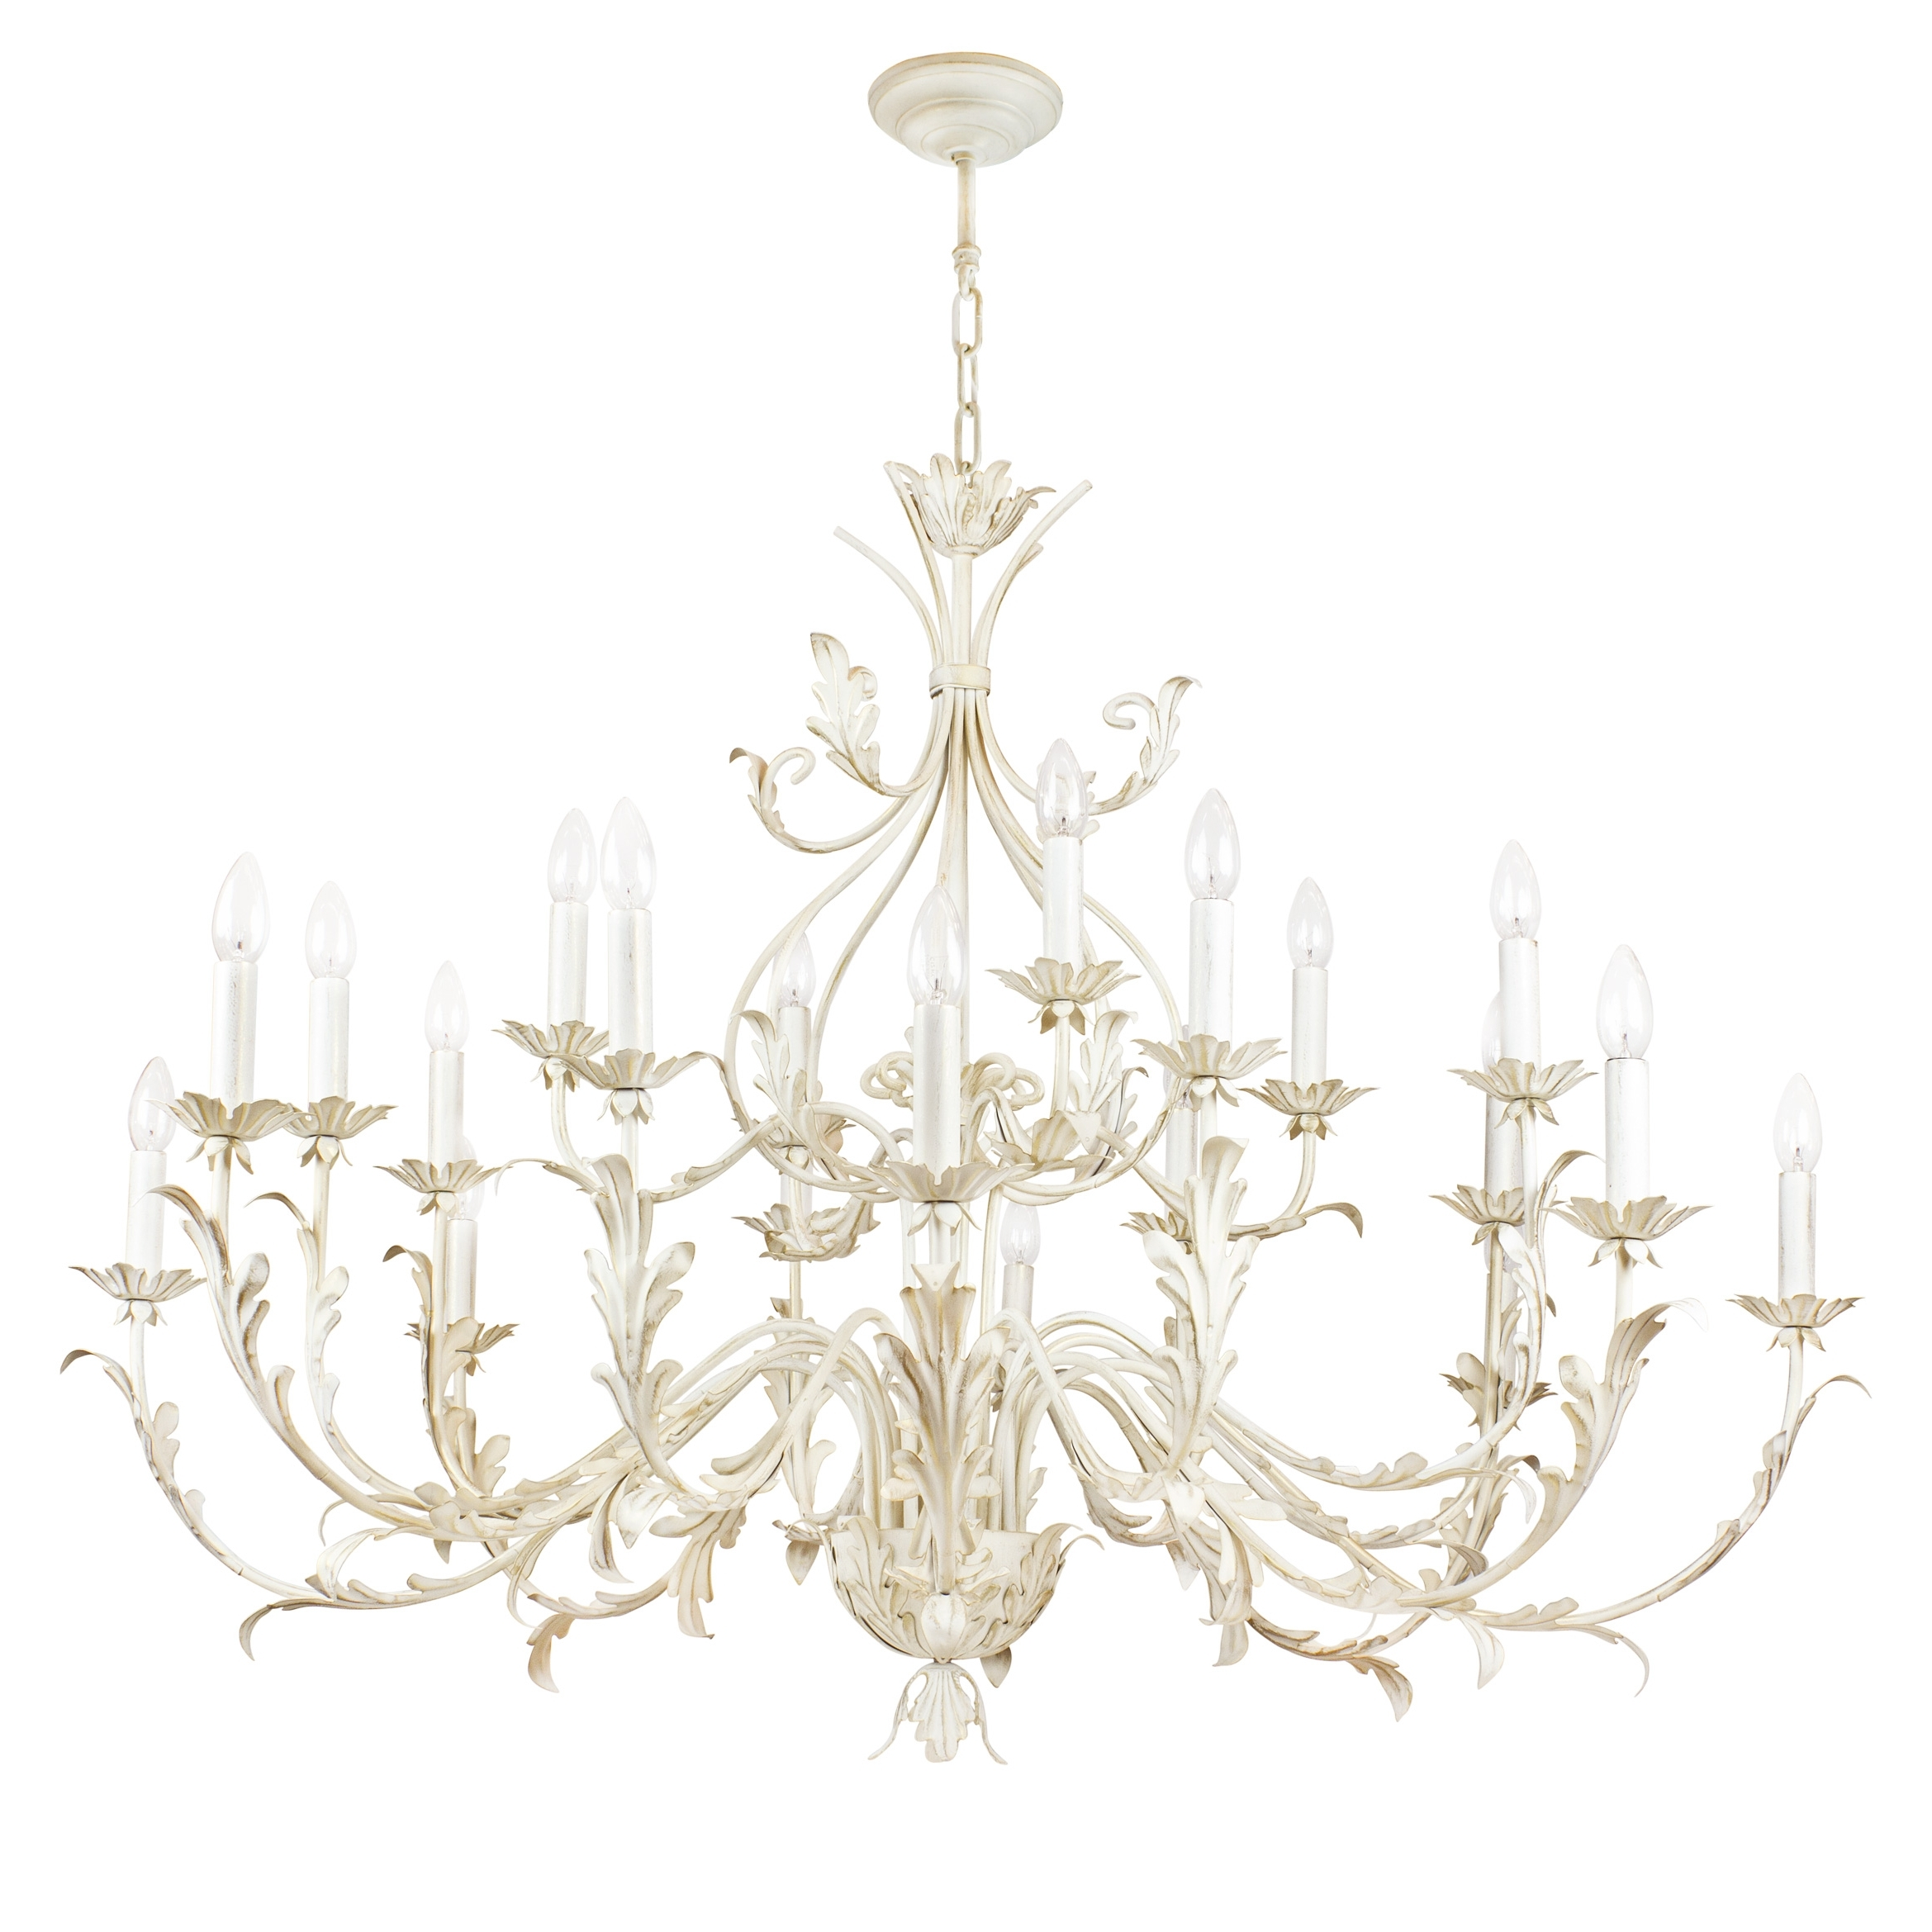 Trendy Hamilton – Villaverde London Pertaining To Cream Gold Chandelier (View 11 of 20)